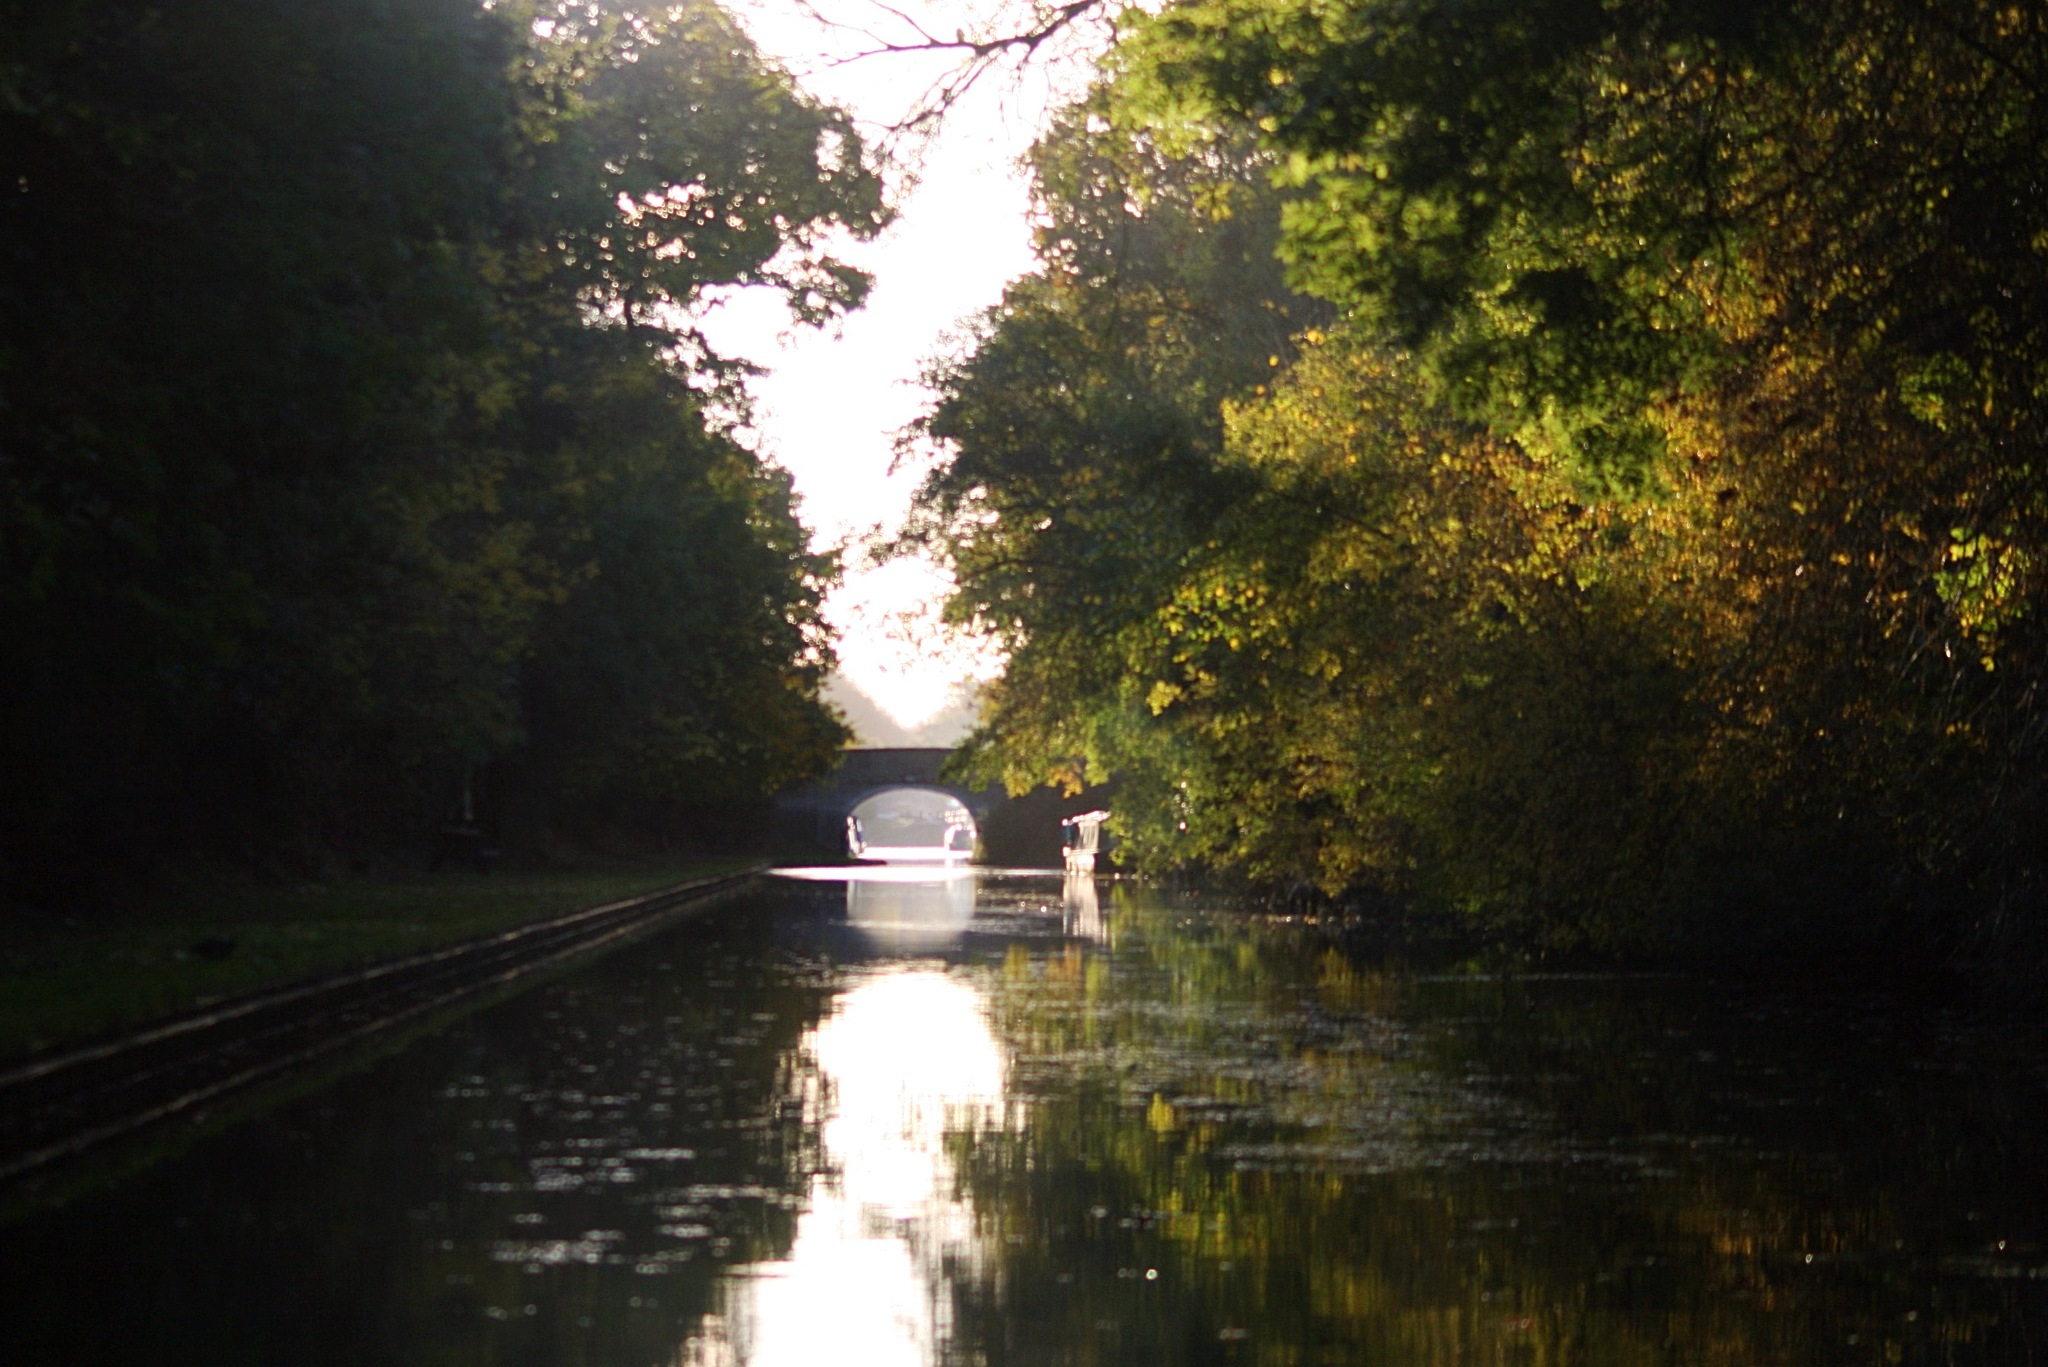 Shropshire Union canal Wheaton Aston  by Gaz Williams